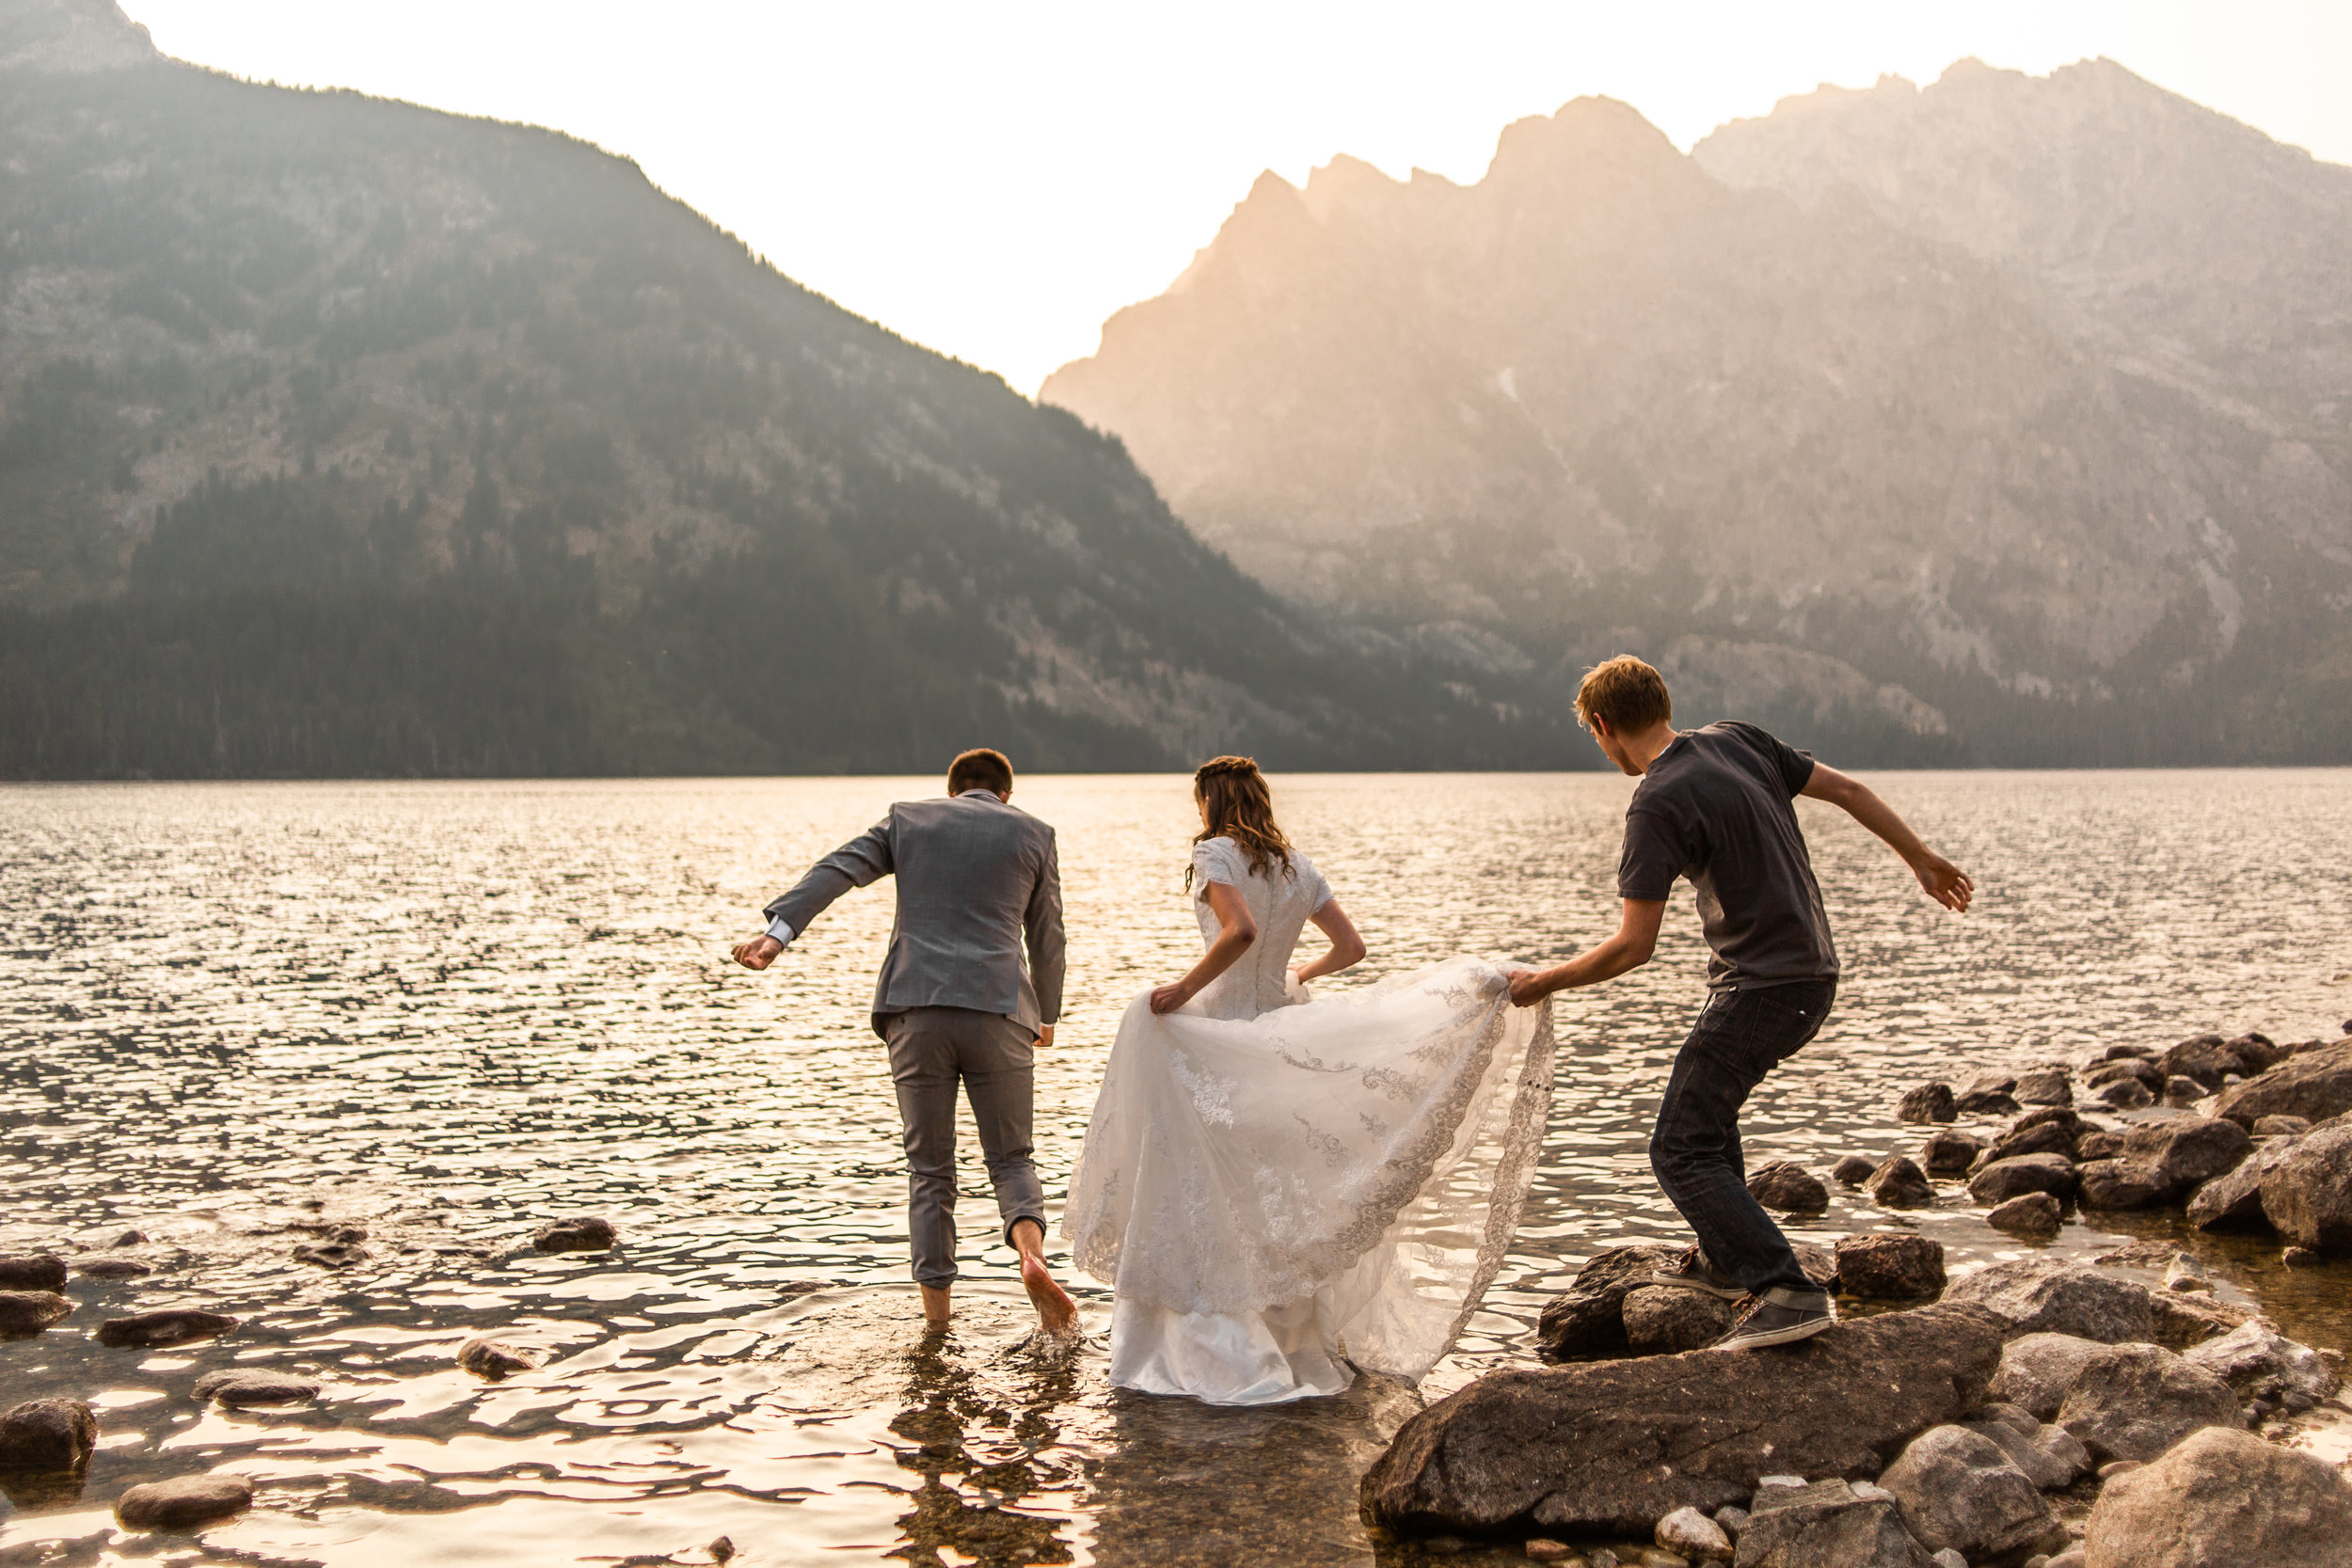 Grand-Teton-National-Park-Bridal-Session19.jpg